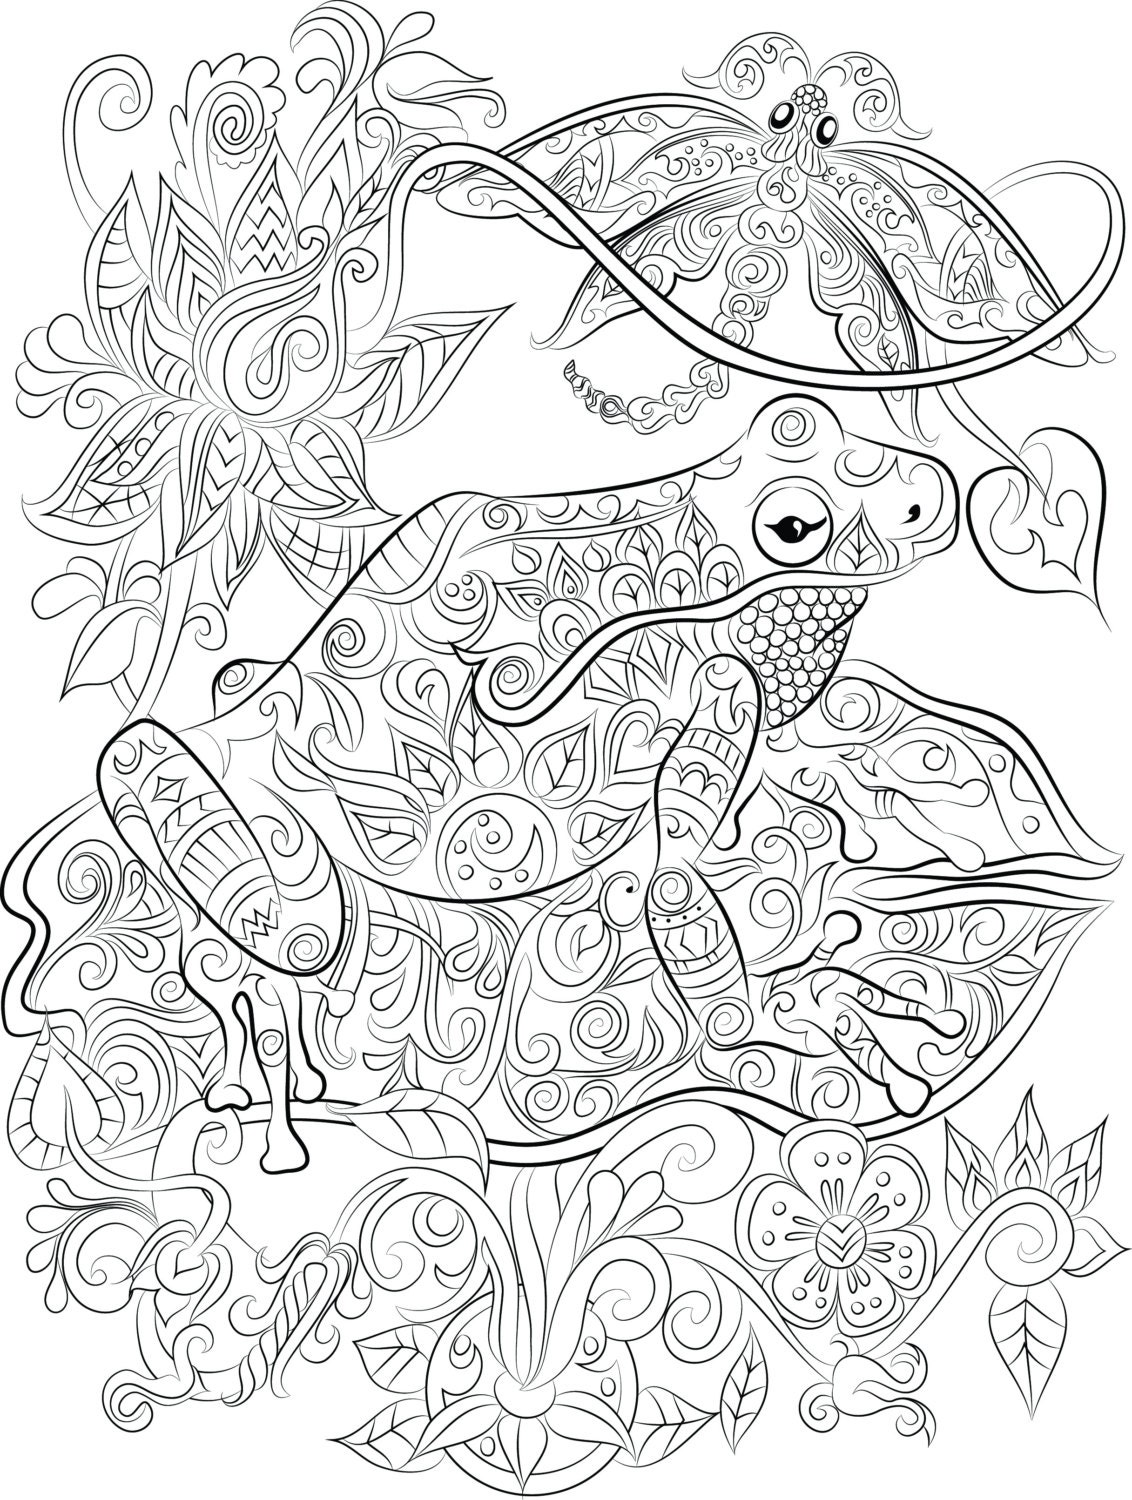 frog and lily pad coloring pages - frog on a lily pad instant digital download